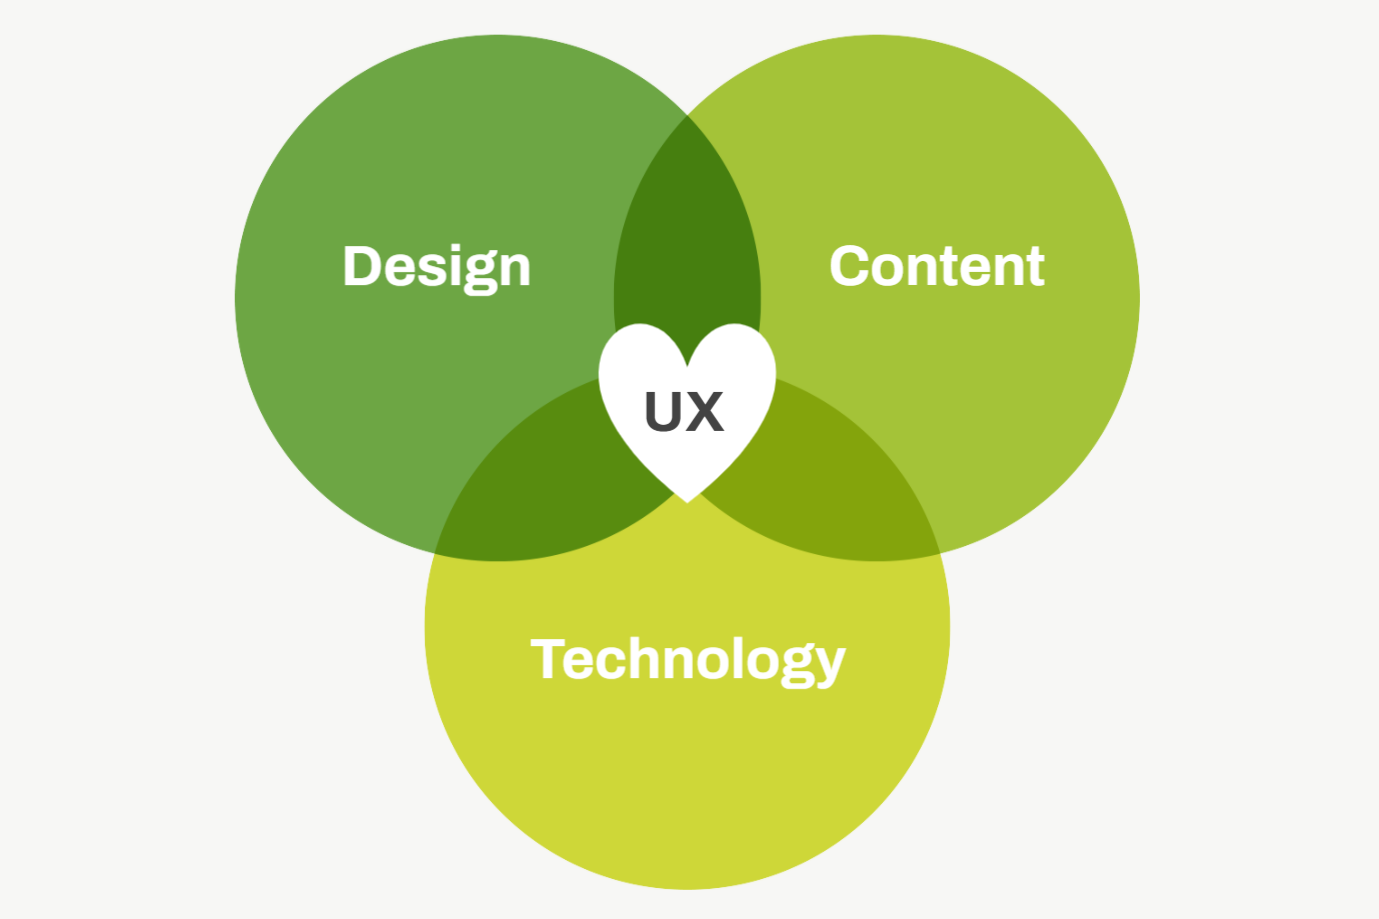 A positive user experience (UX) combines reliable technology, clear and inviting design, and exciting and easily readable content.